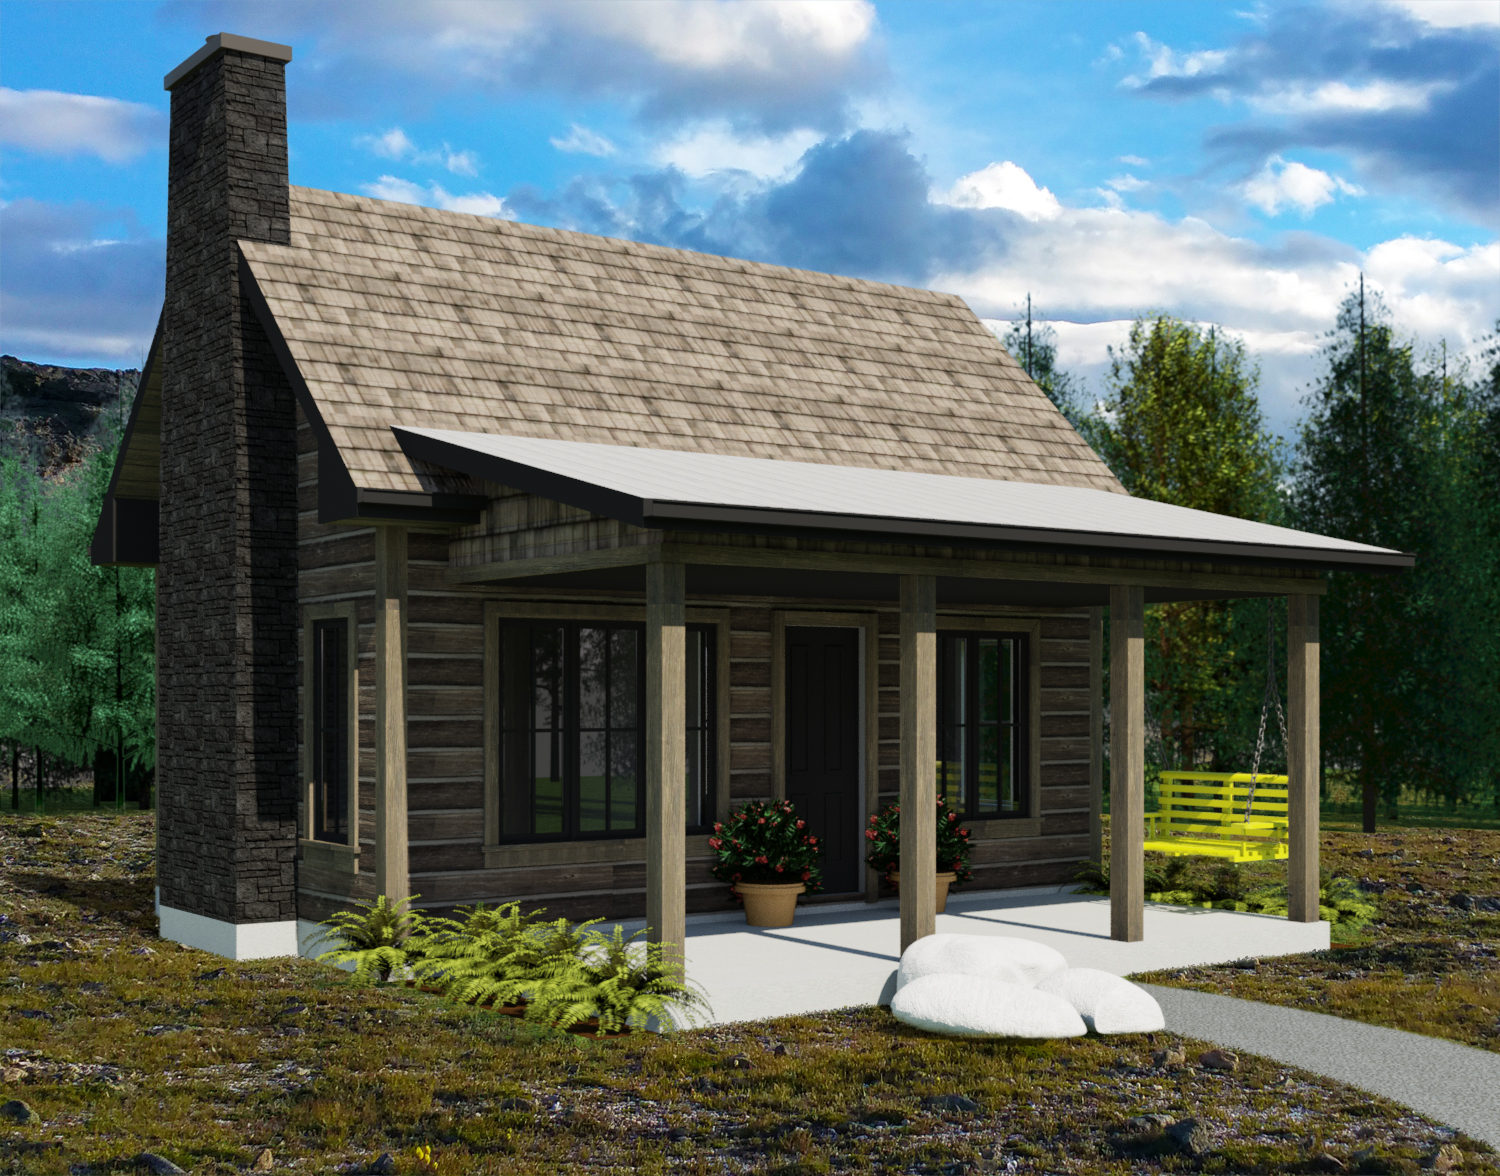 Small Home Plans: The Yukon Tiny House Plans By Robinson Residential